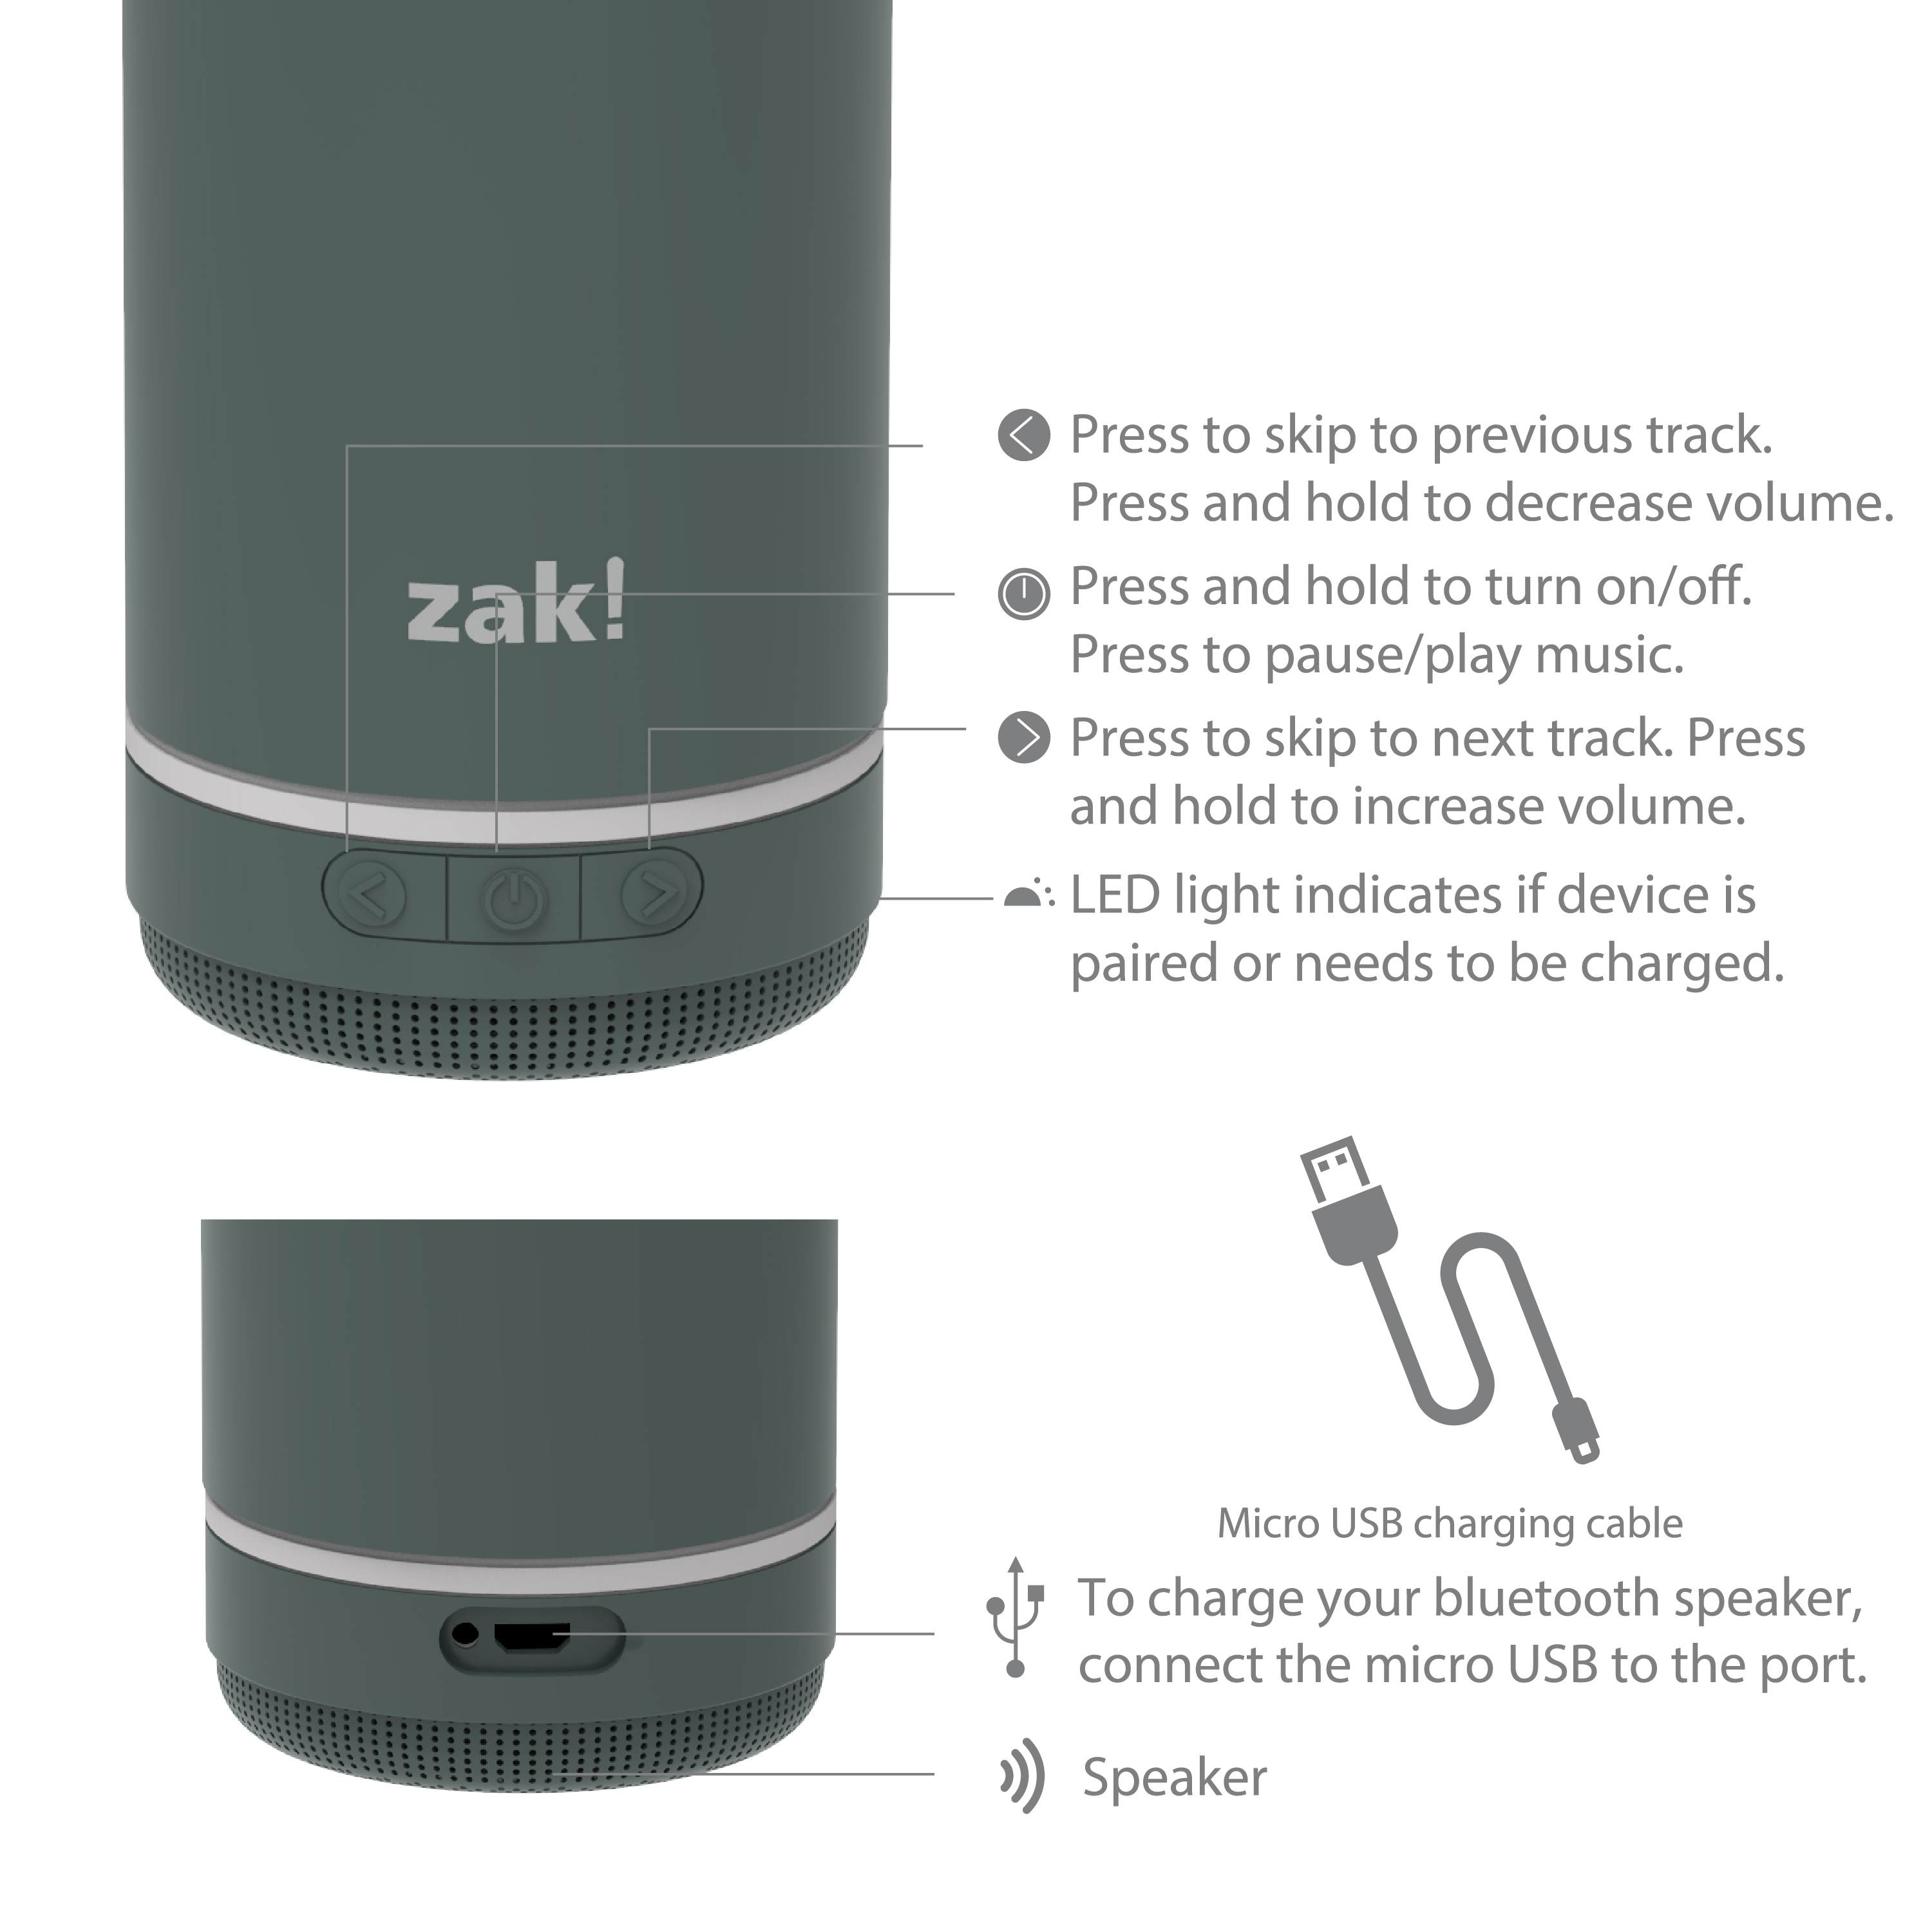 Zak Play 17.5 ounce Stainless Steel Tumbler with Bluetooth Speaker, Gray slideshow image 10